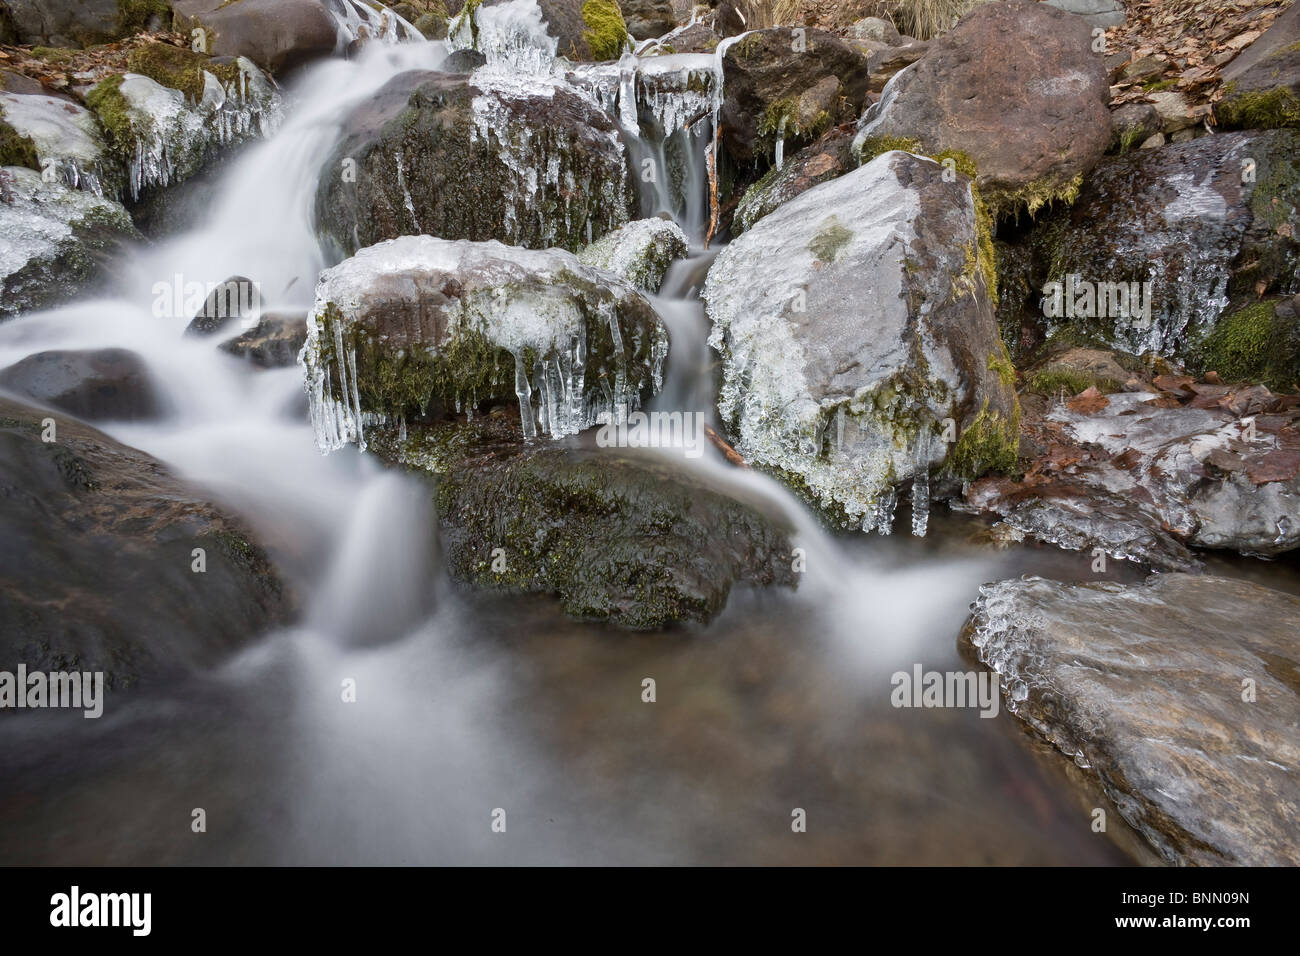 Icicles hang from moss covered rocks at Falls Creek in Alaska during Winter - Stock Image